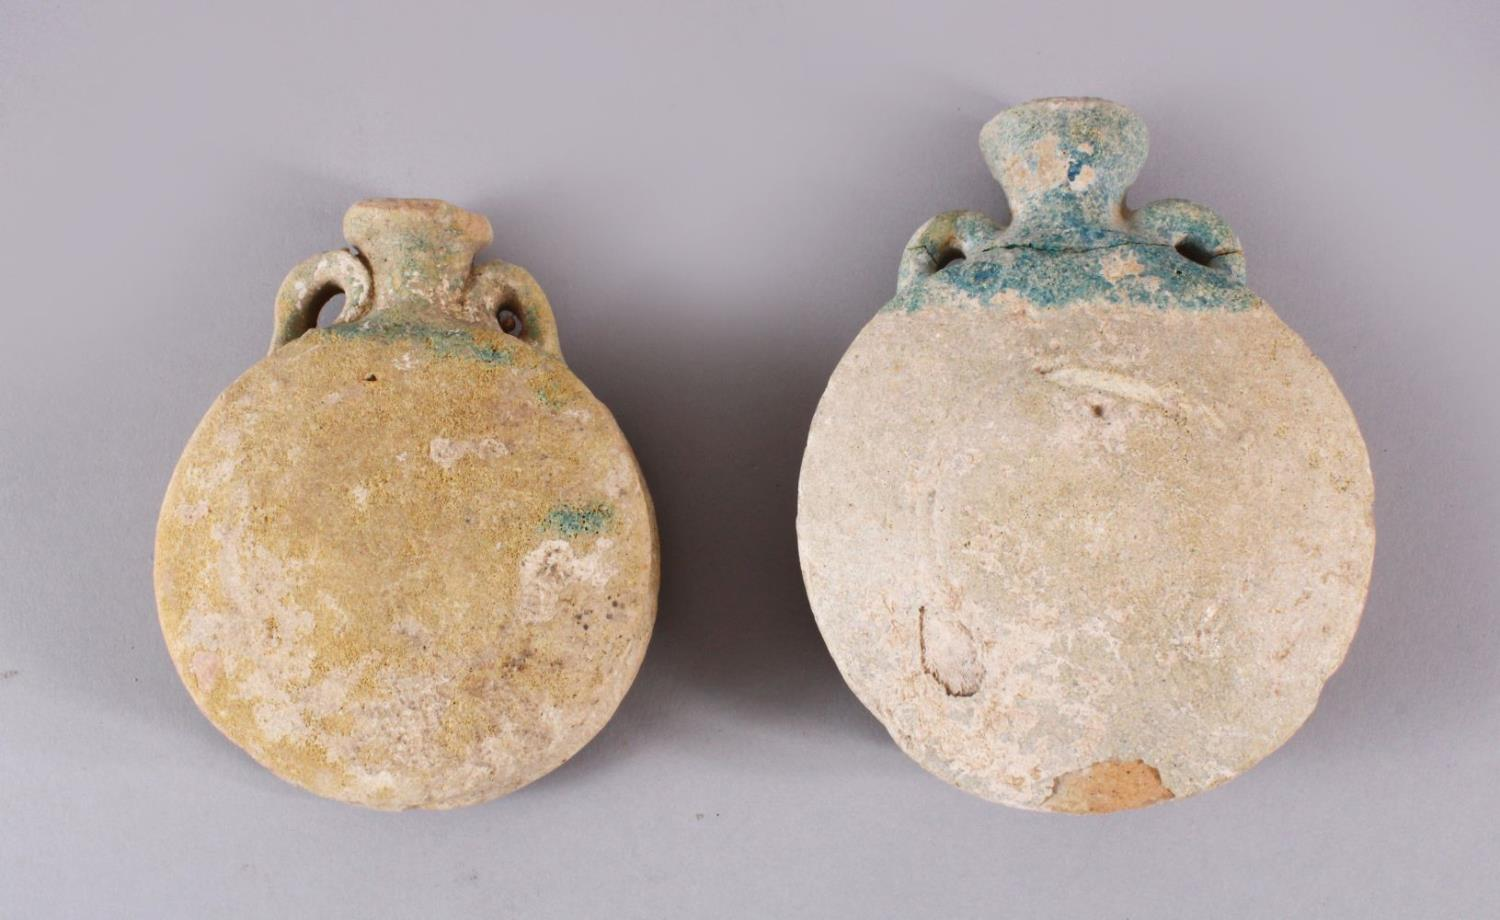 TWO 10TH CENTURY IRANAIN POTTERY TWIN HANDLE BOTTLES, each with traces of turquoise glaze to the